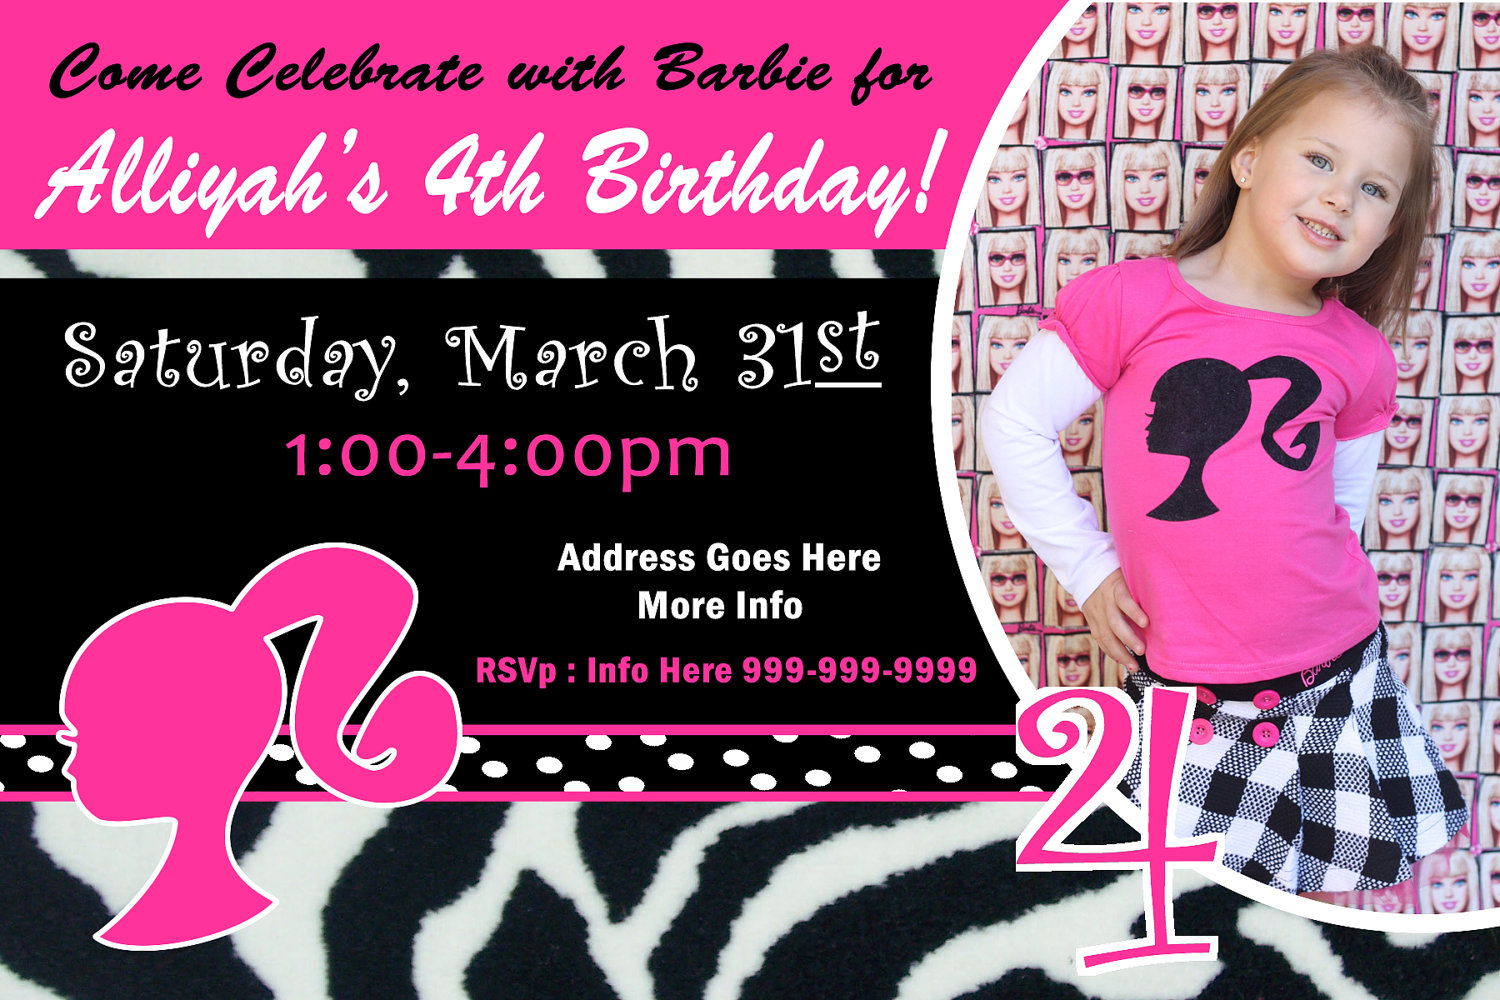 barbie theme birthday invitation card ; barbie_birthday_invitations_4